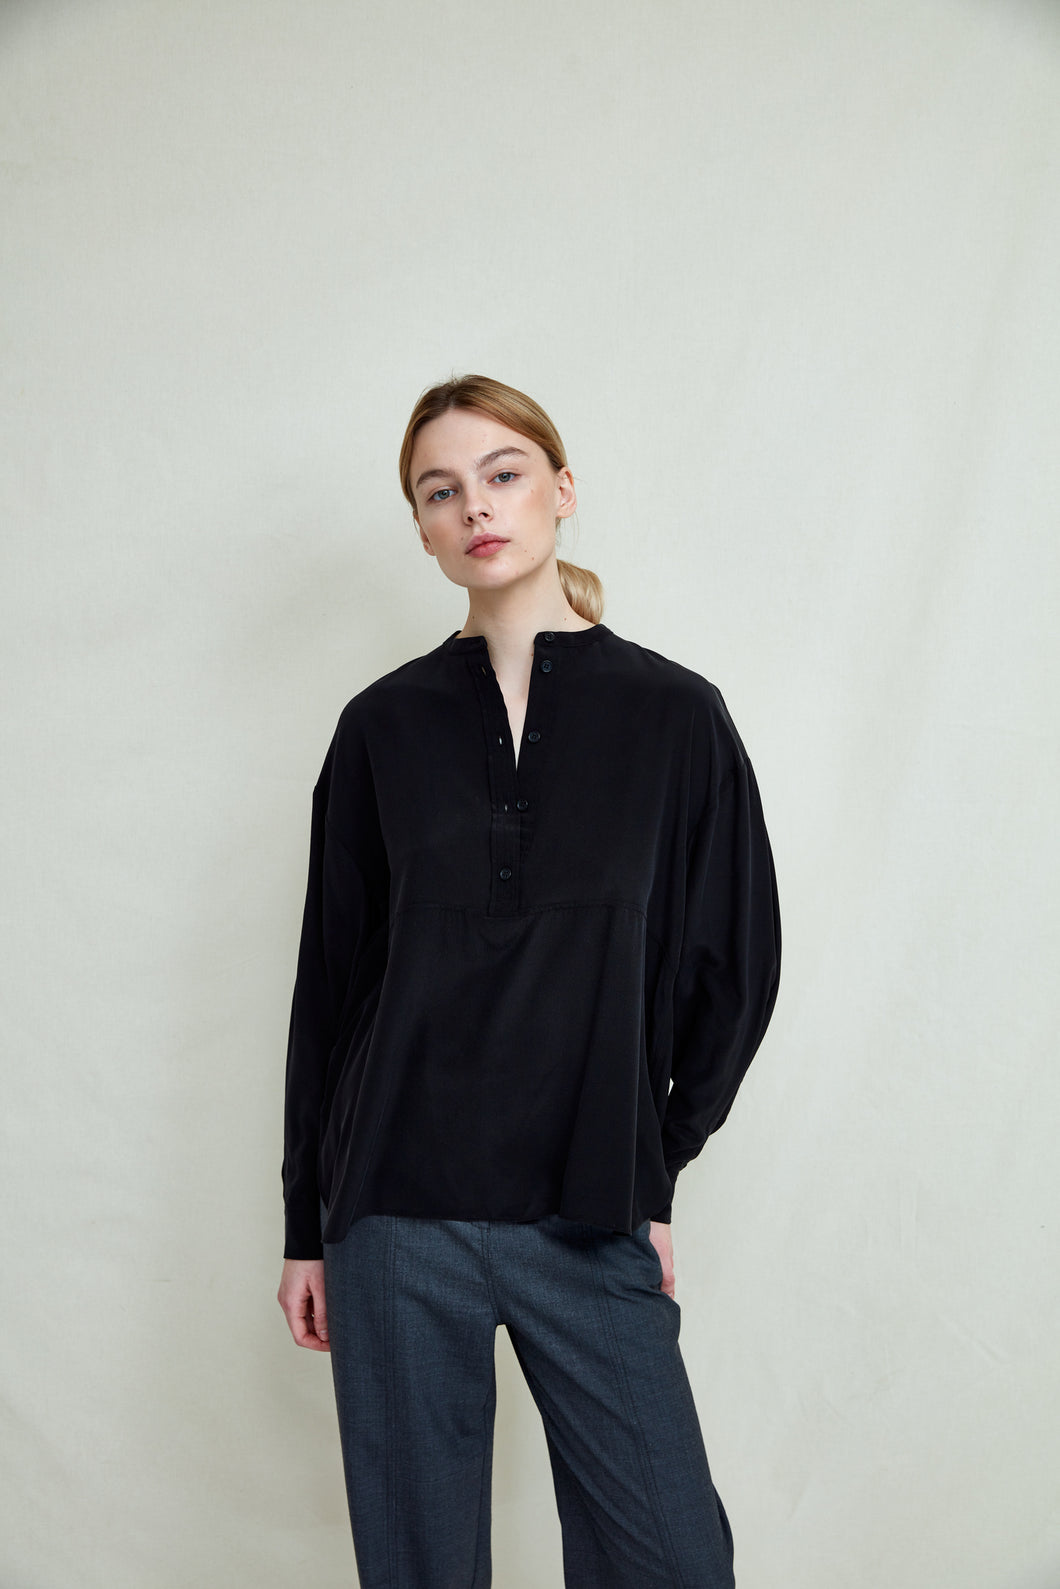 FWSS Your Woman Bluse Anthracite Black